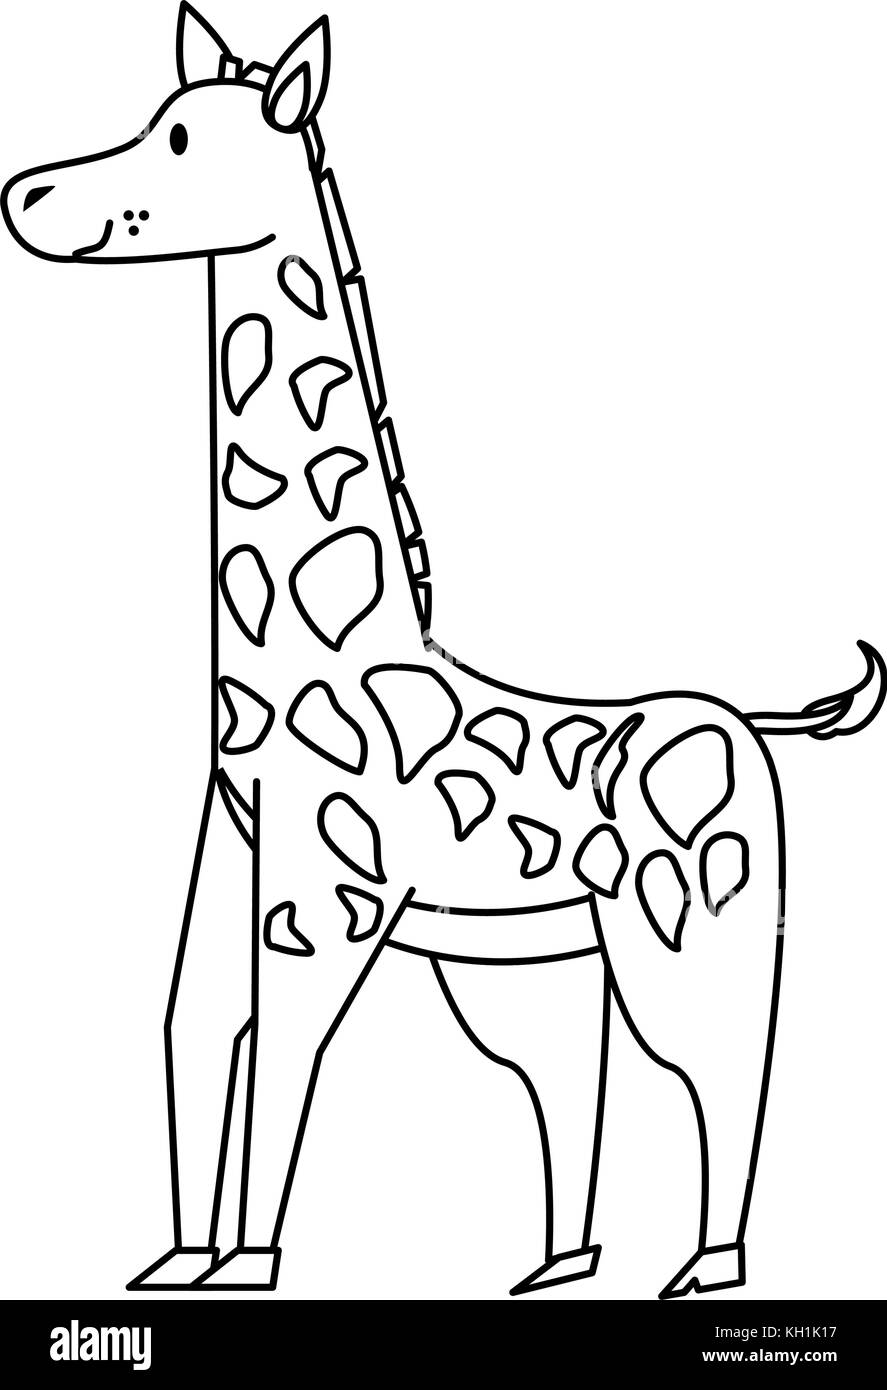 coloring pages of baby giraffes.html